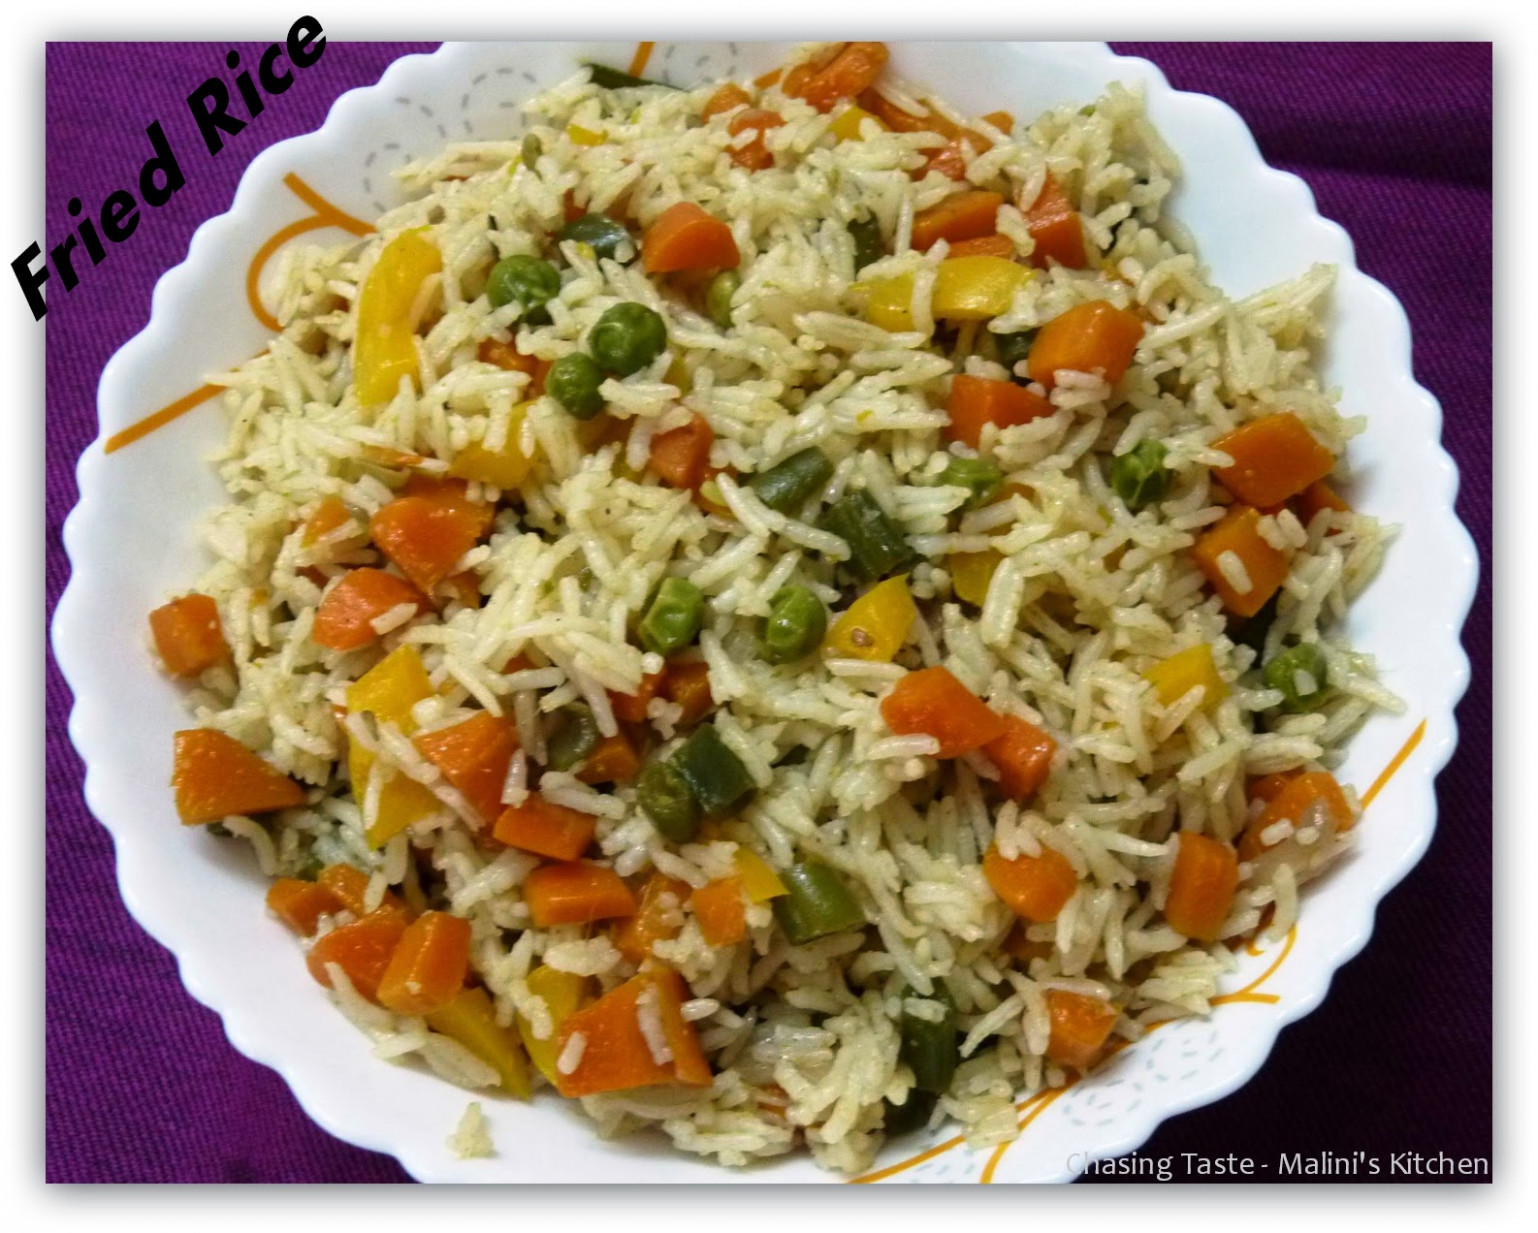 Chasing Taste: Vegetable Fried Rice Recipe - Indian Style - rice recipes vegetarian